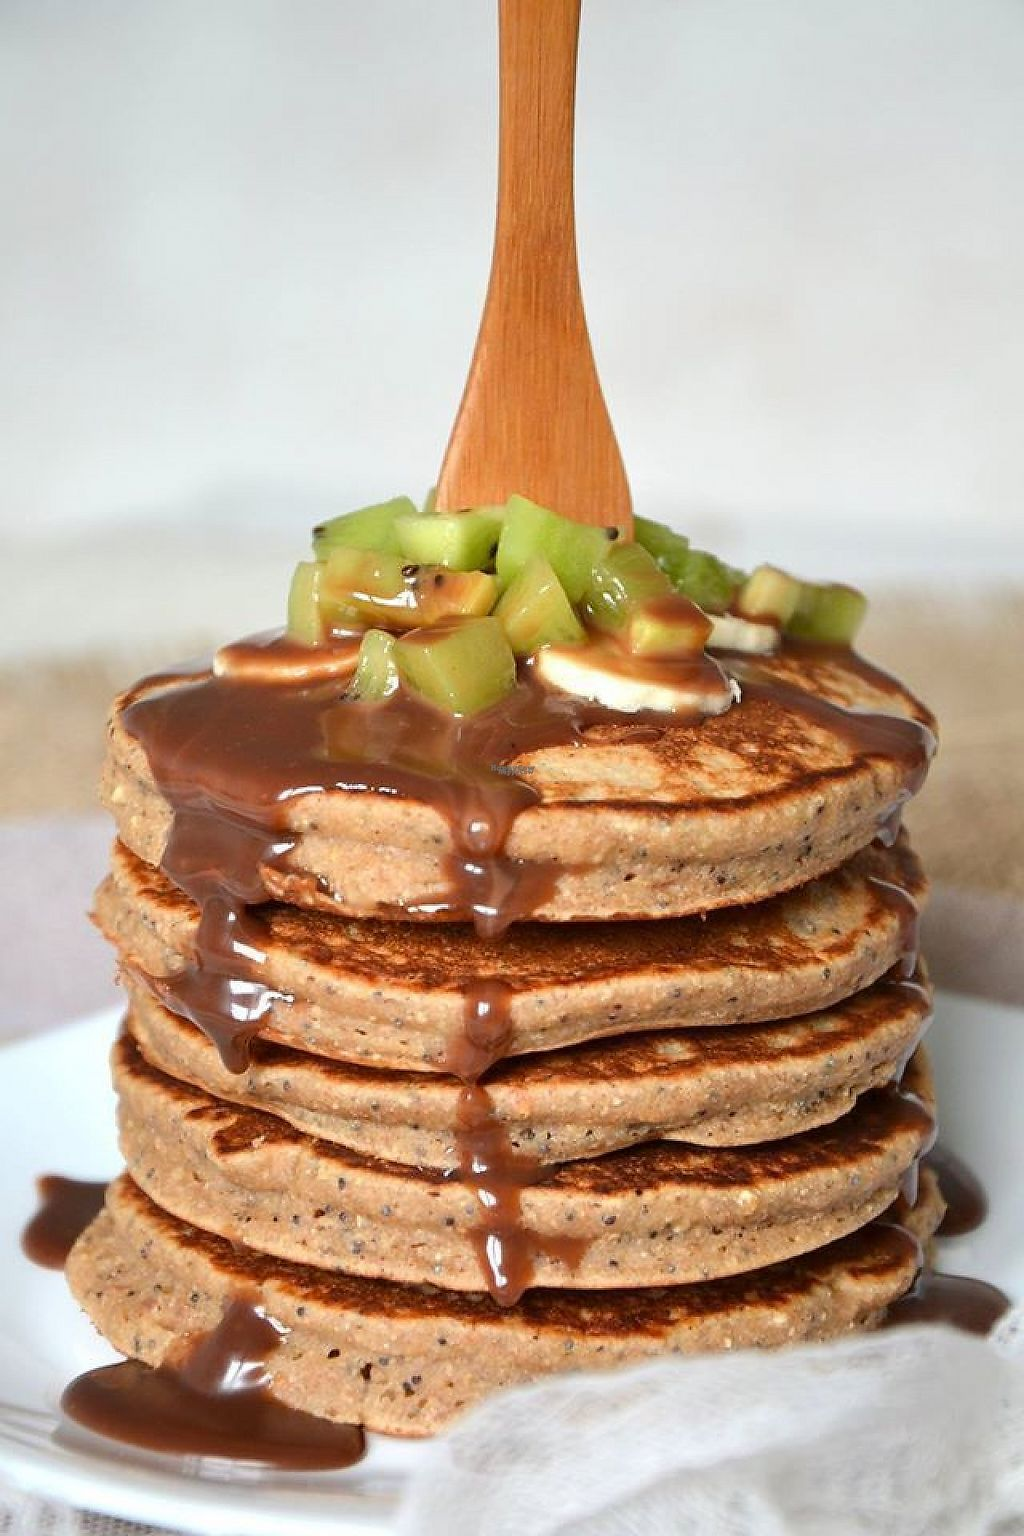 """Photo of La Vie Claire  by <a href=""""/members/profile/community"""">community</a> <br/>vegan pancakes  <br/> February 4, 2017  - <a href='/contact/abuse/image/72046/221894'>Report</a>"""